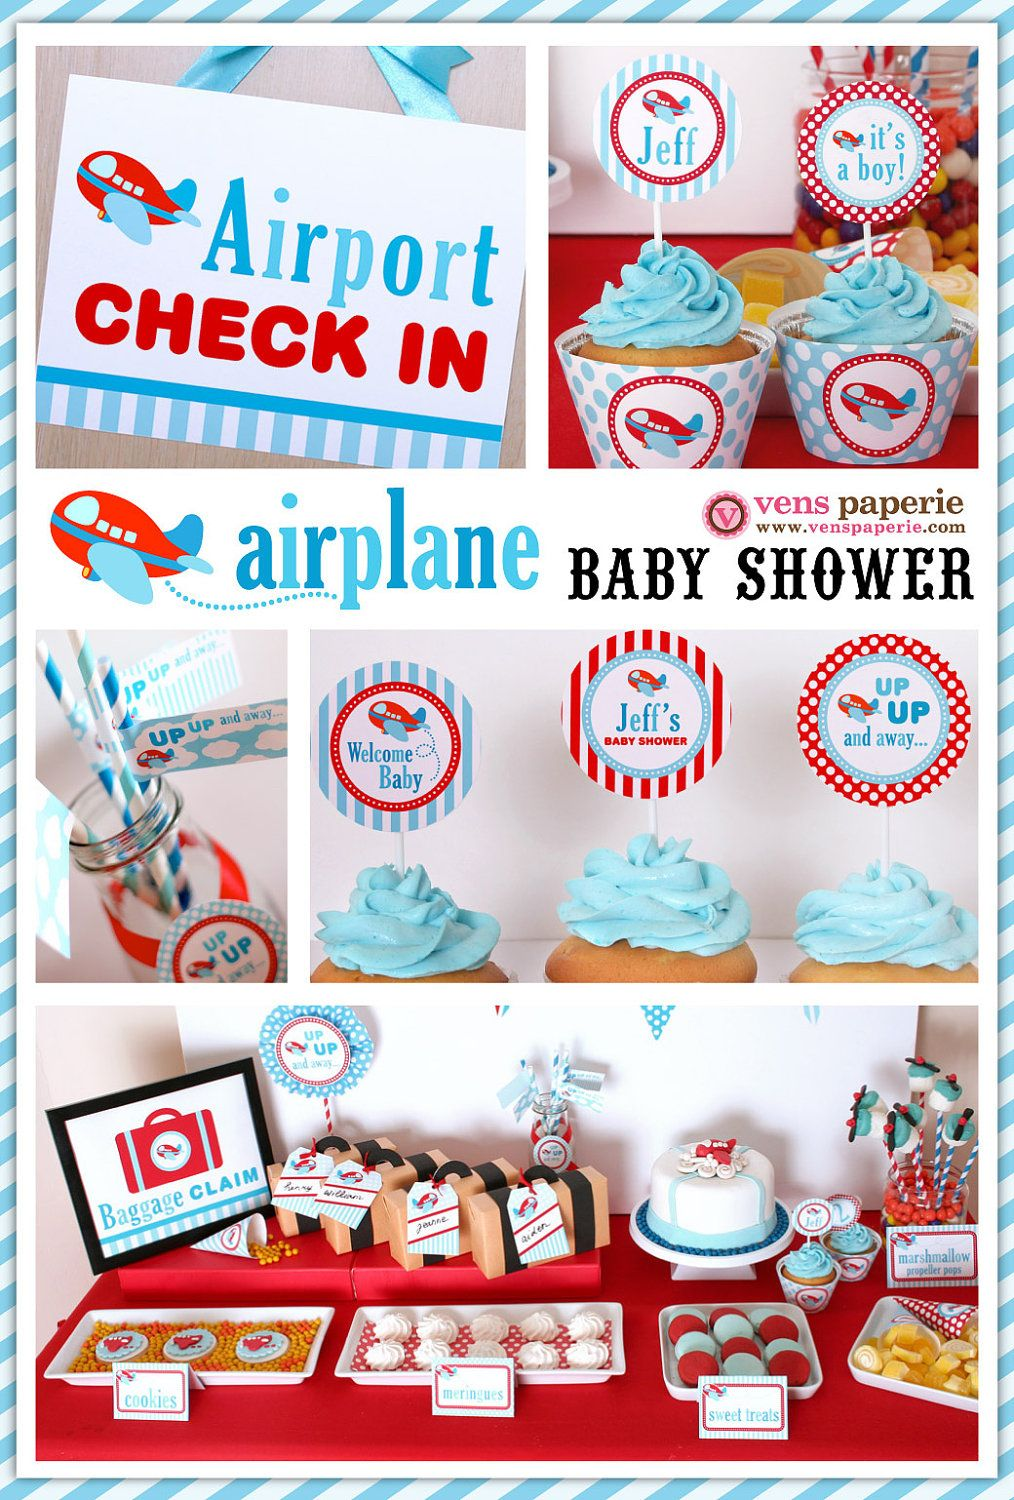 Captivating Airplane Baby Shower Package Personalized FULL Collection Set   PRINTABLE  DIY   BS818CA1x